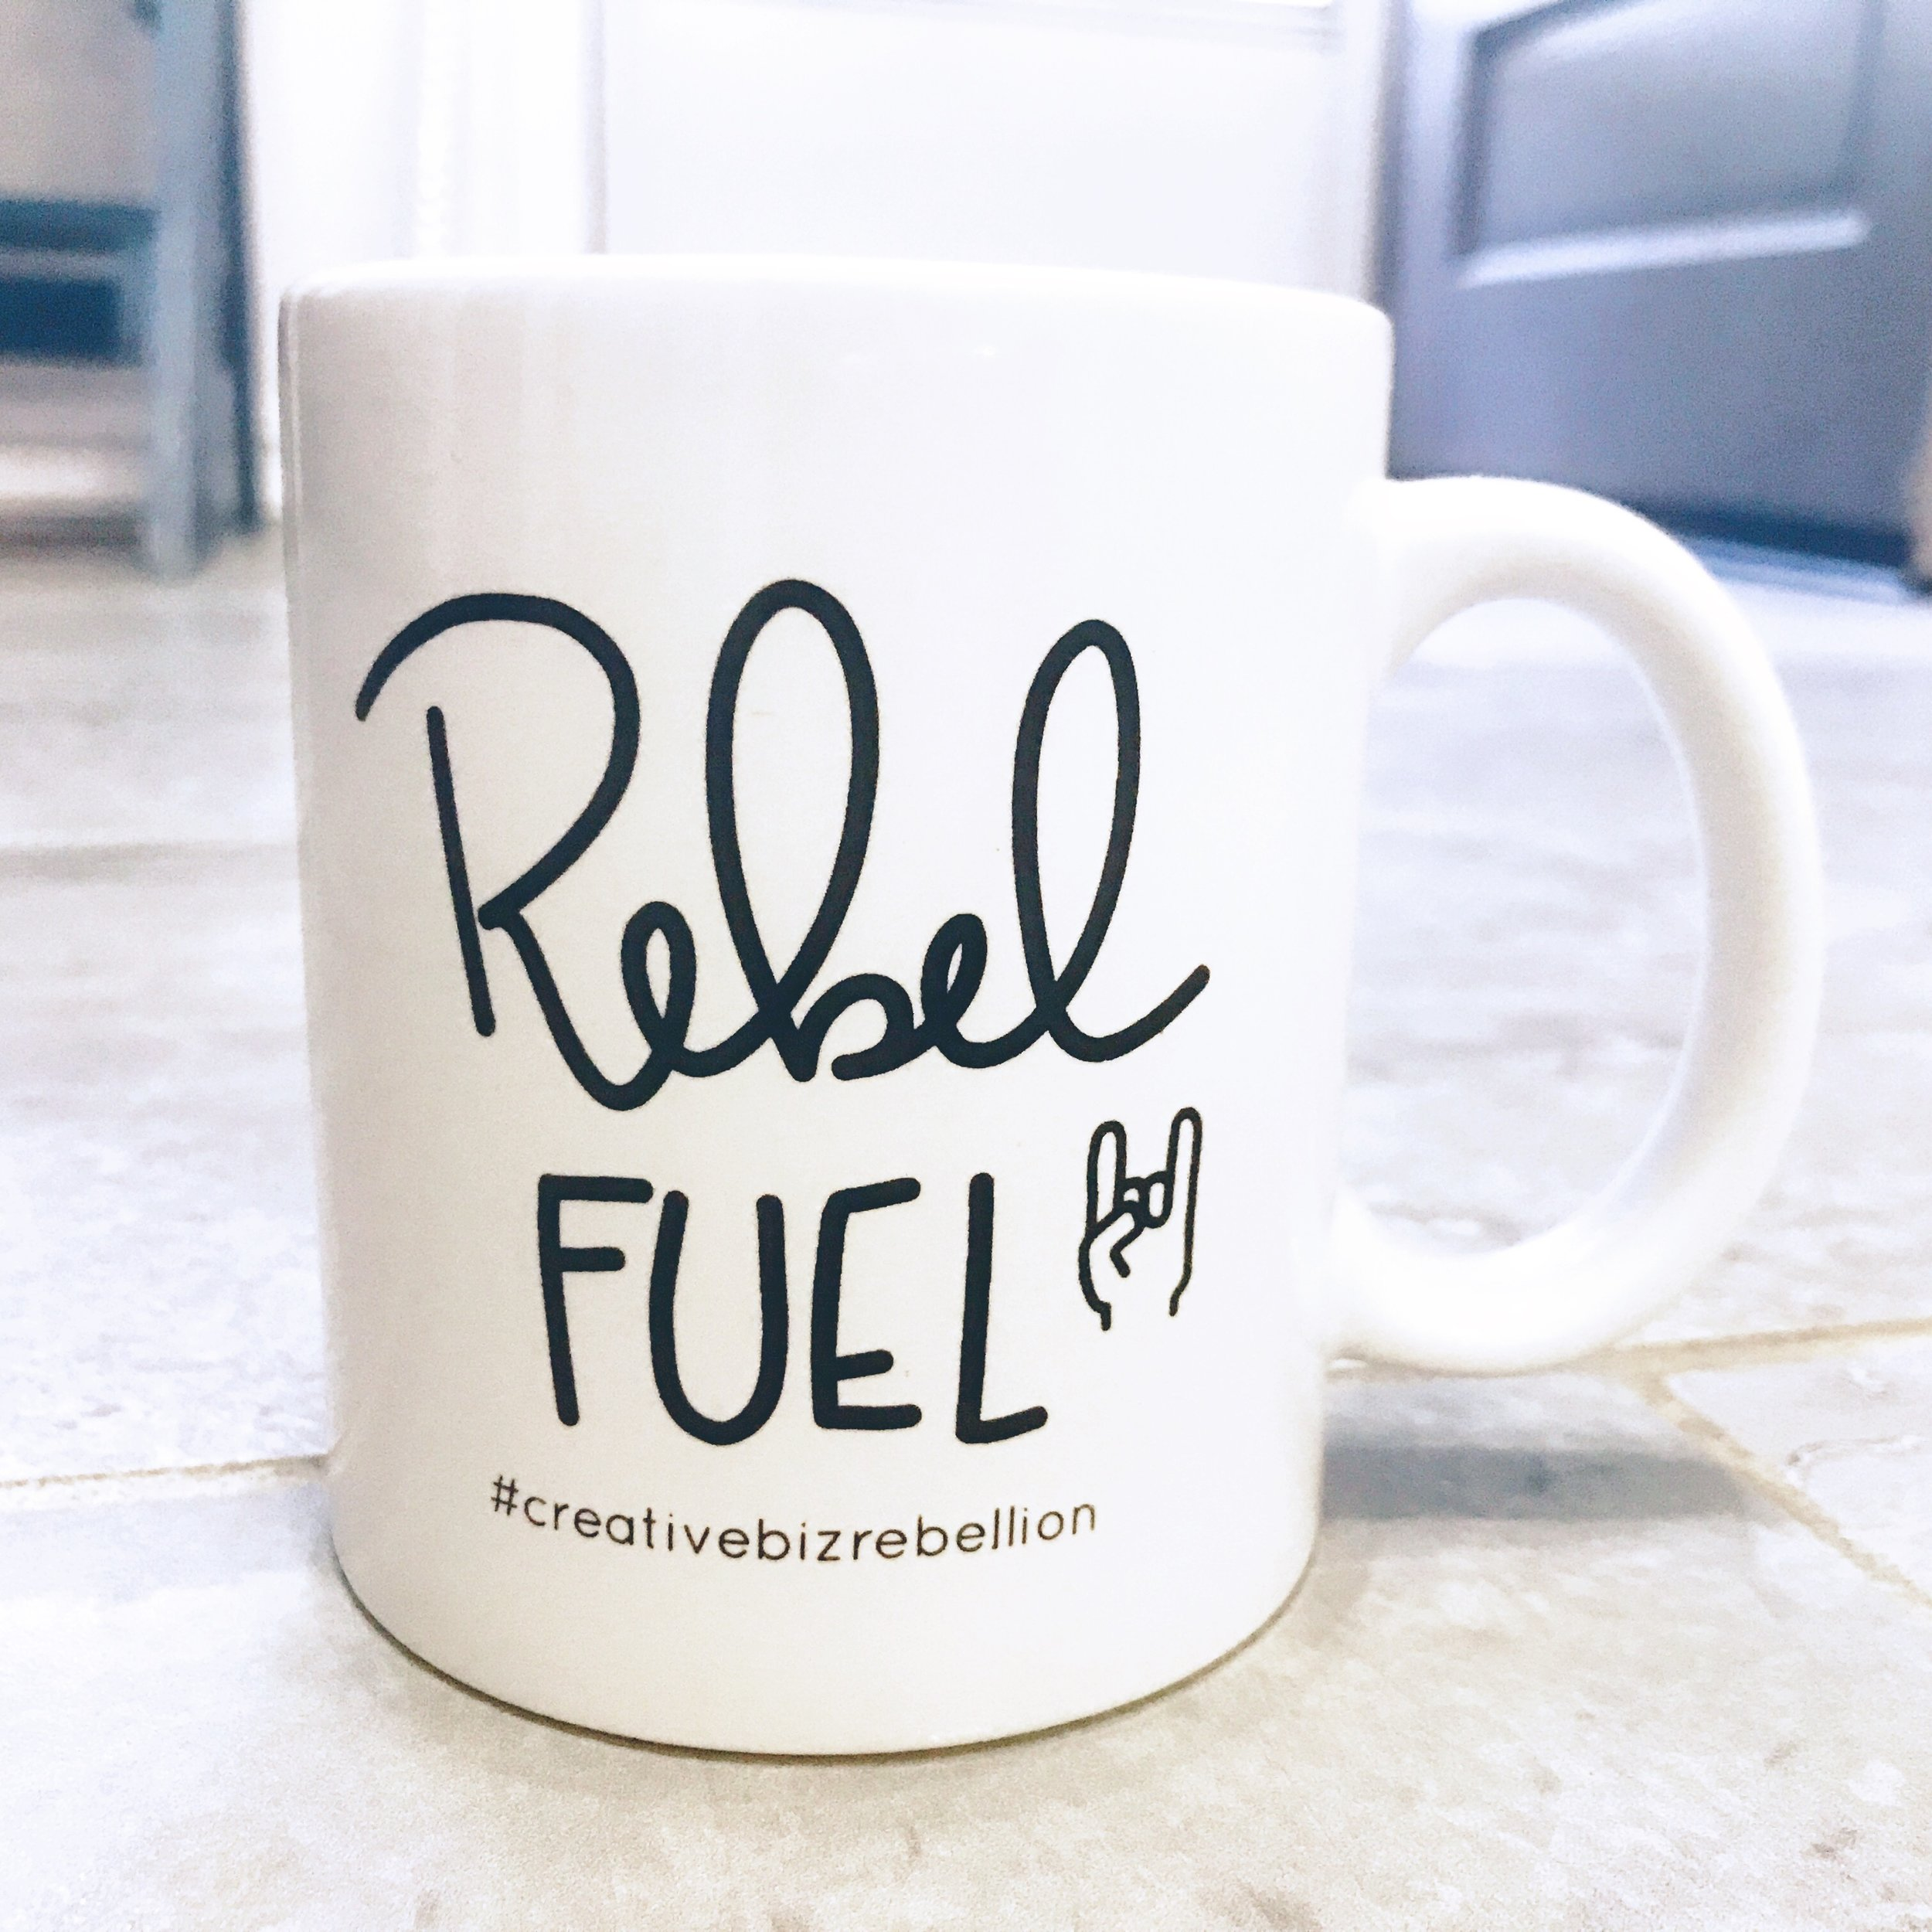 Rebel Fuel is what I needed to conquer my snake dreams. Find out more on the blog at www.theonyxfeather.com/blog